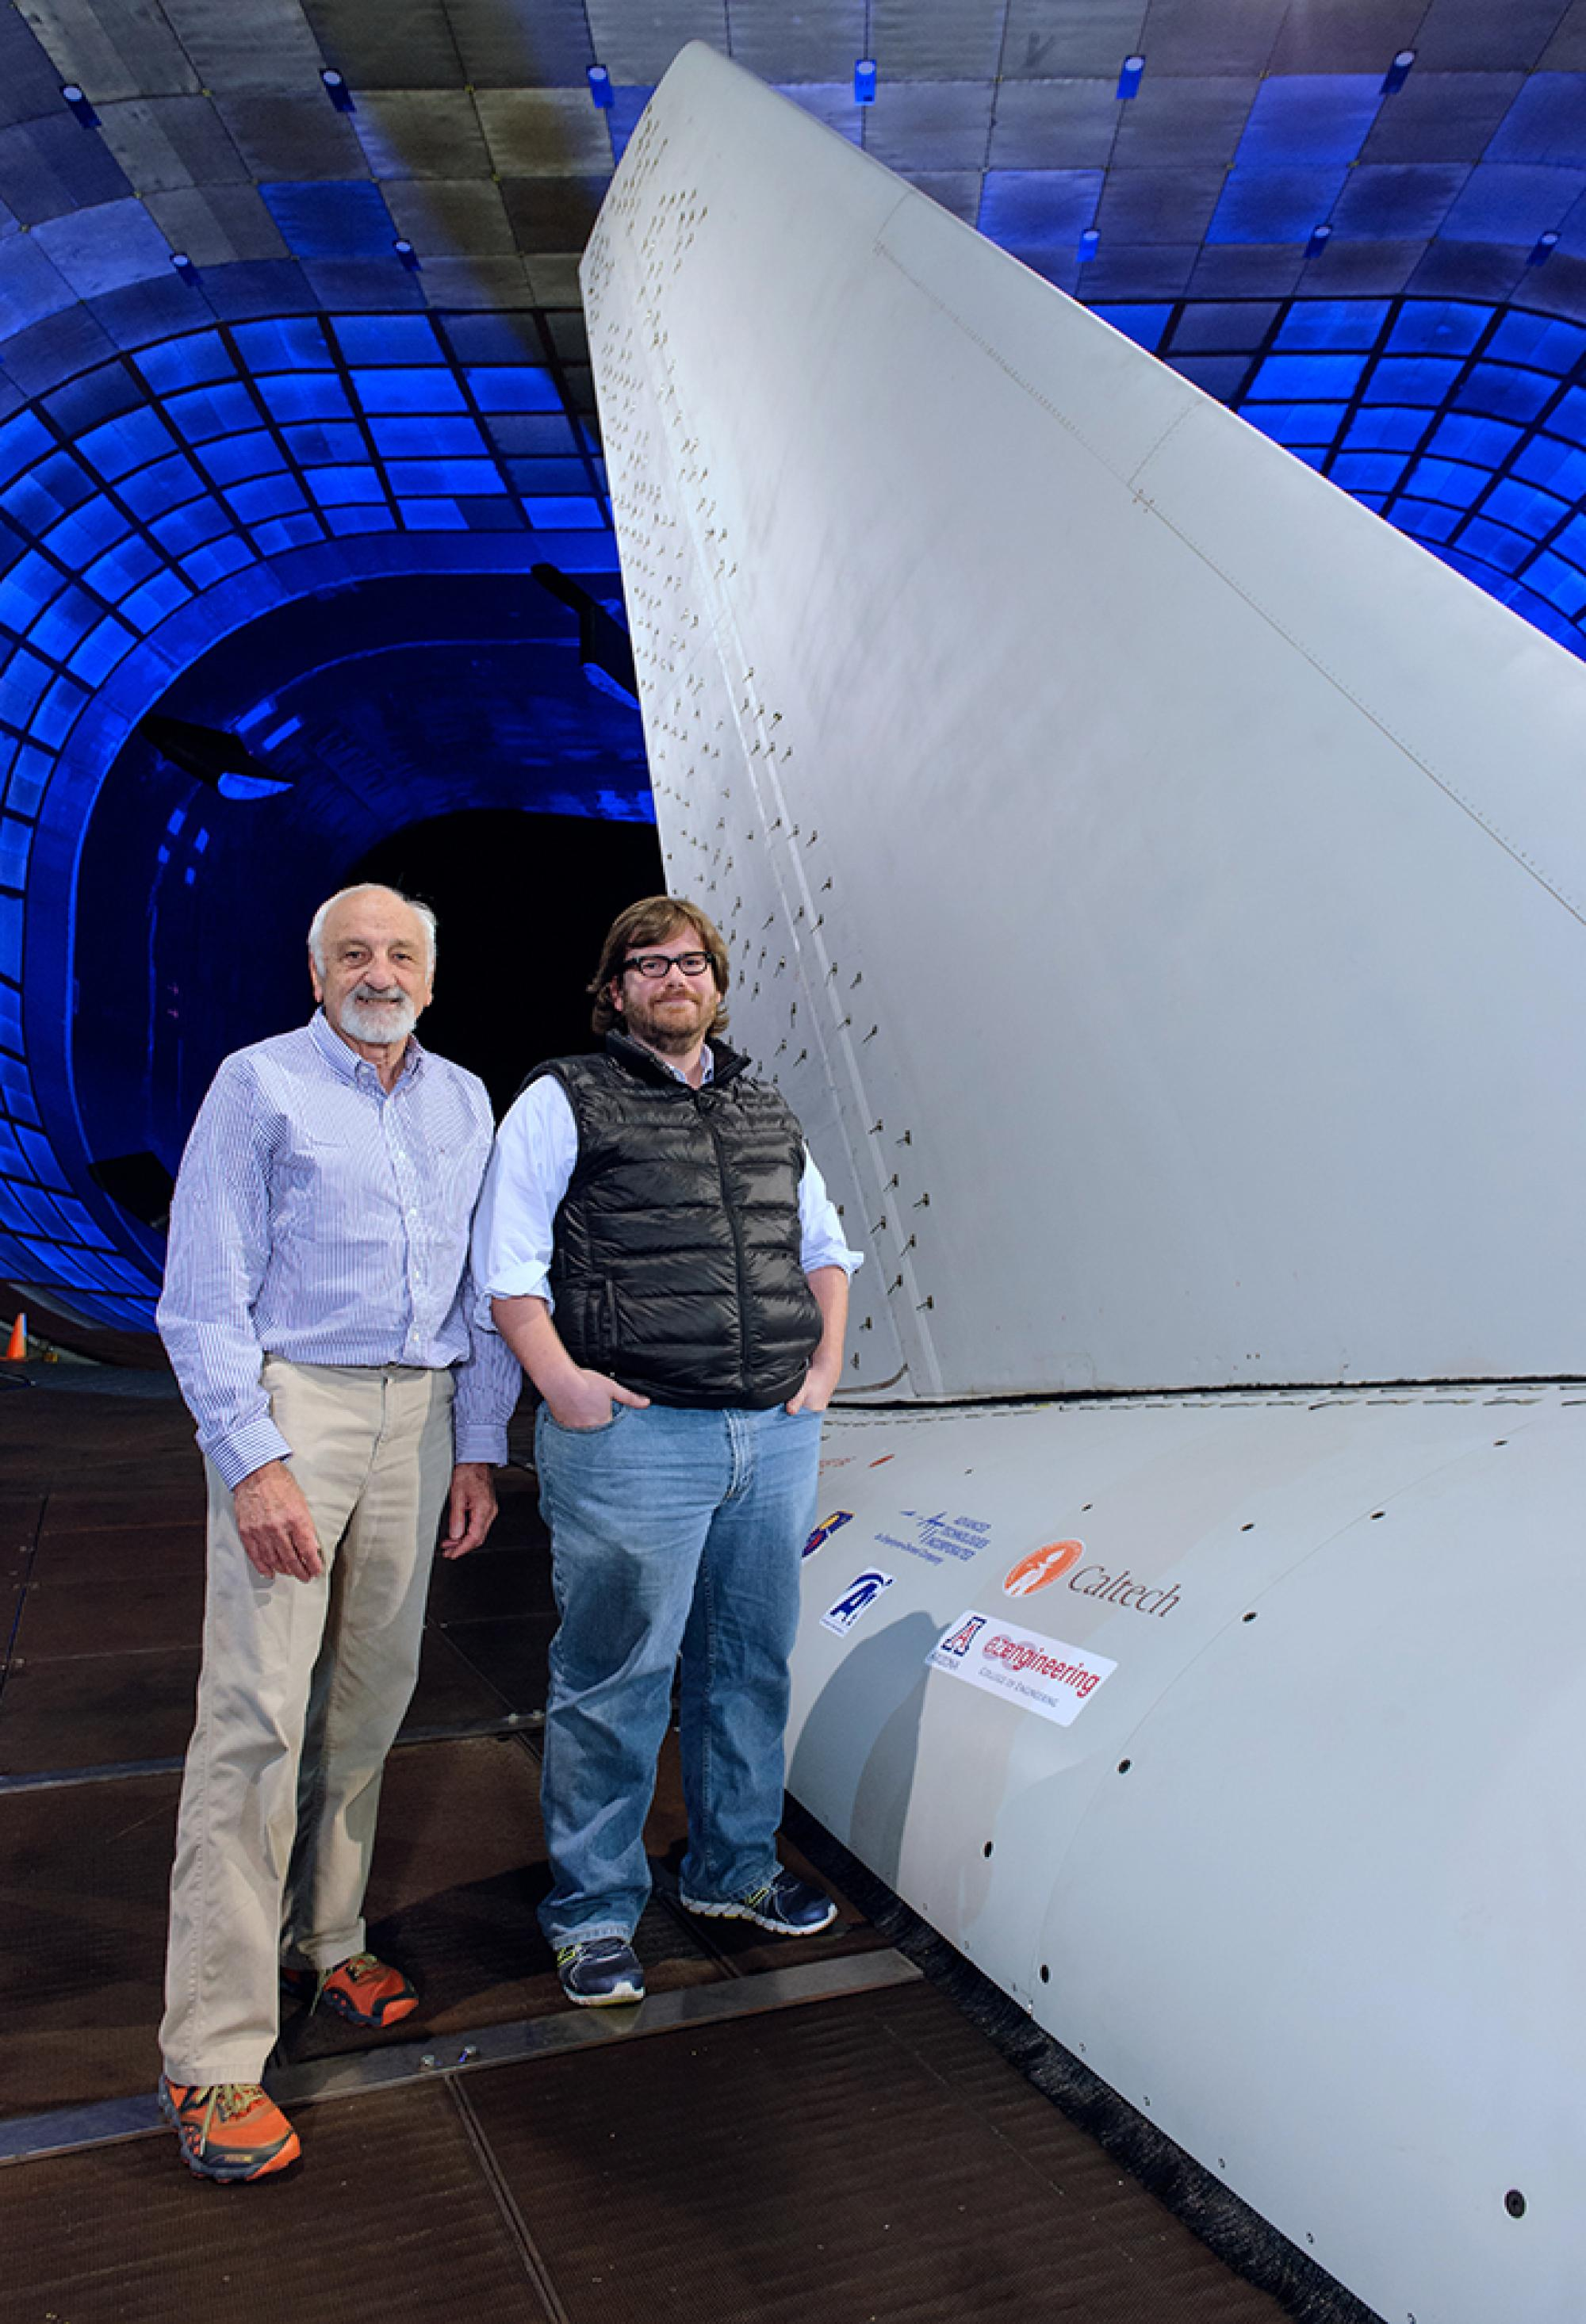 Israel Wygnanski , professor of aerospace and mechanical engineering, and Caltech collaborator Emilio Graff introduced and developed the active flow control system tested recently on this Boeing 757 vertical tail in the wind tunnel at NASA's Ames Research